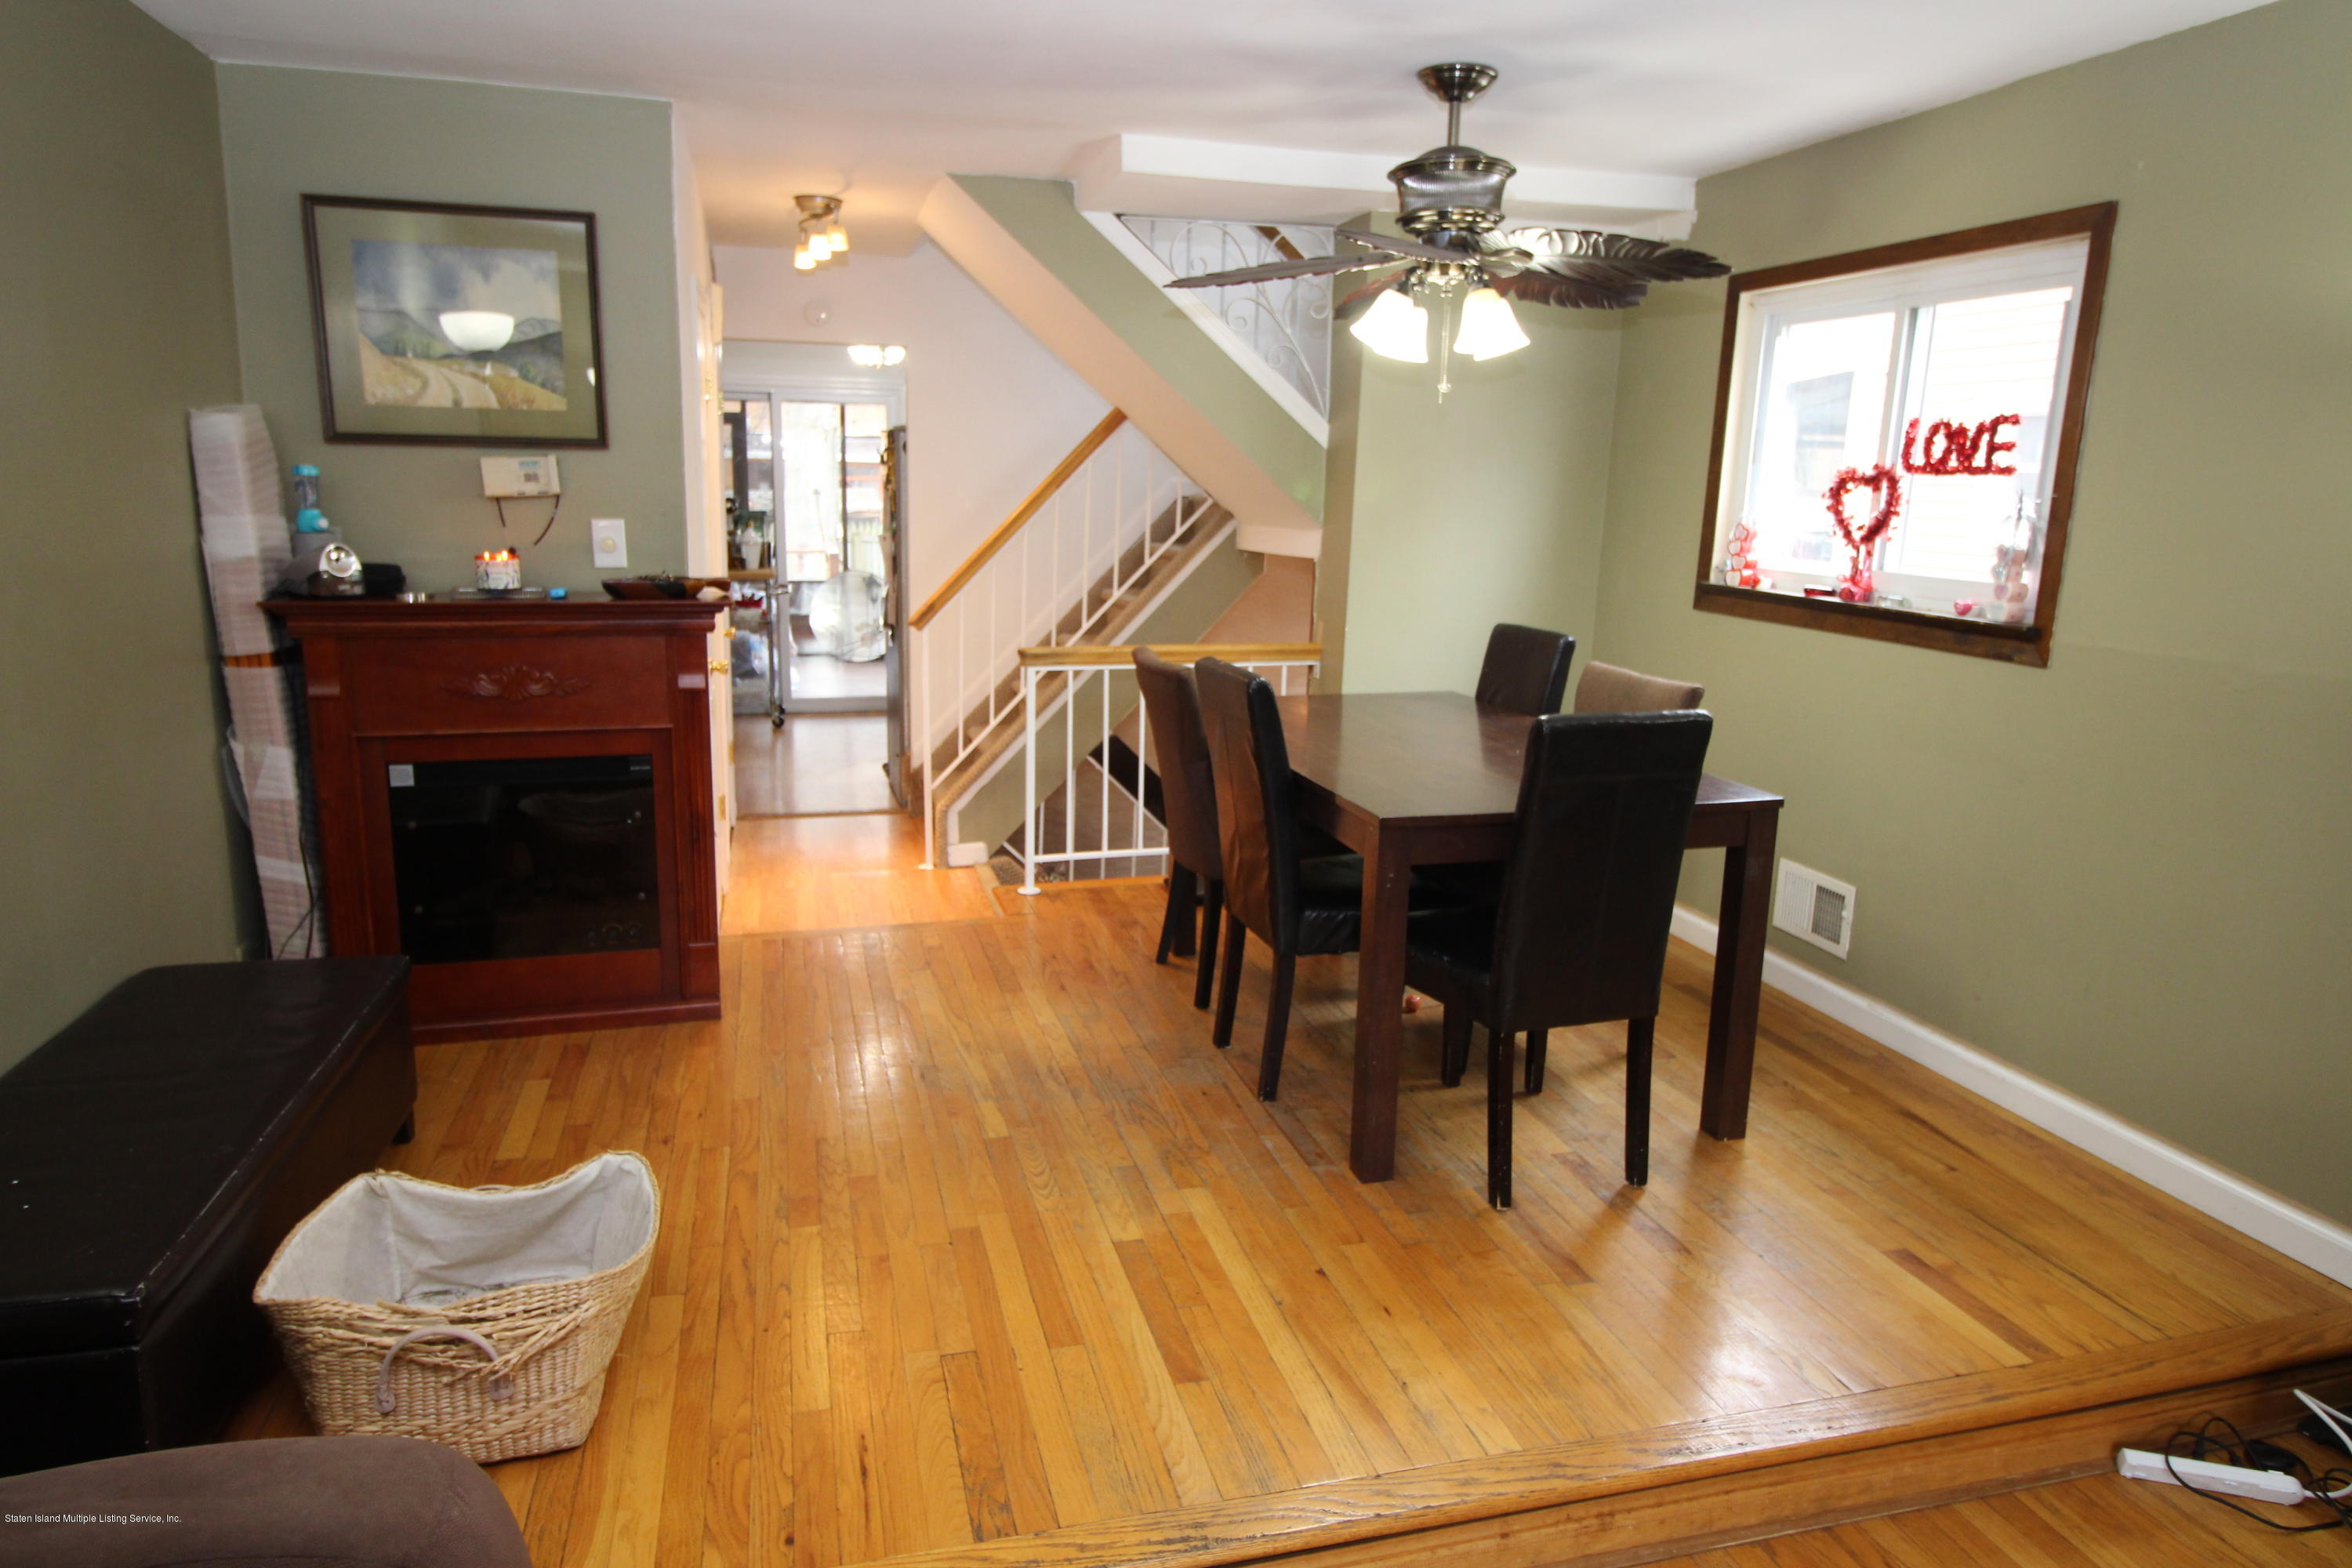 Single Family - Semi-Attached 48 Mulberry Avenue  Staten Island, NY 10314, MLS-1126171-6